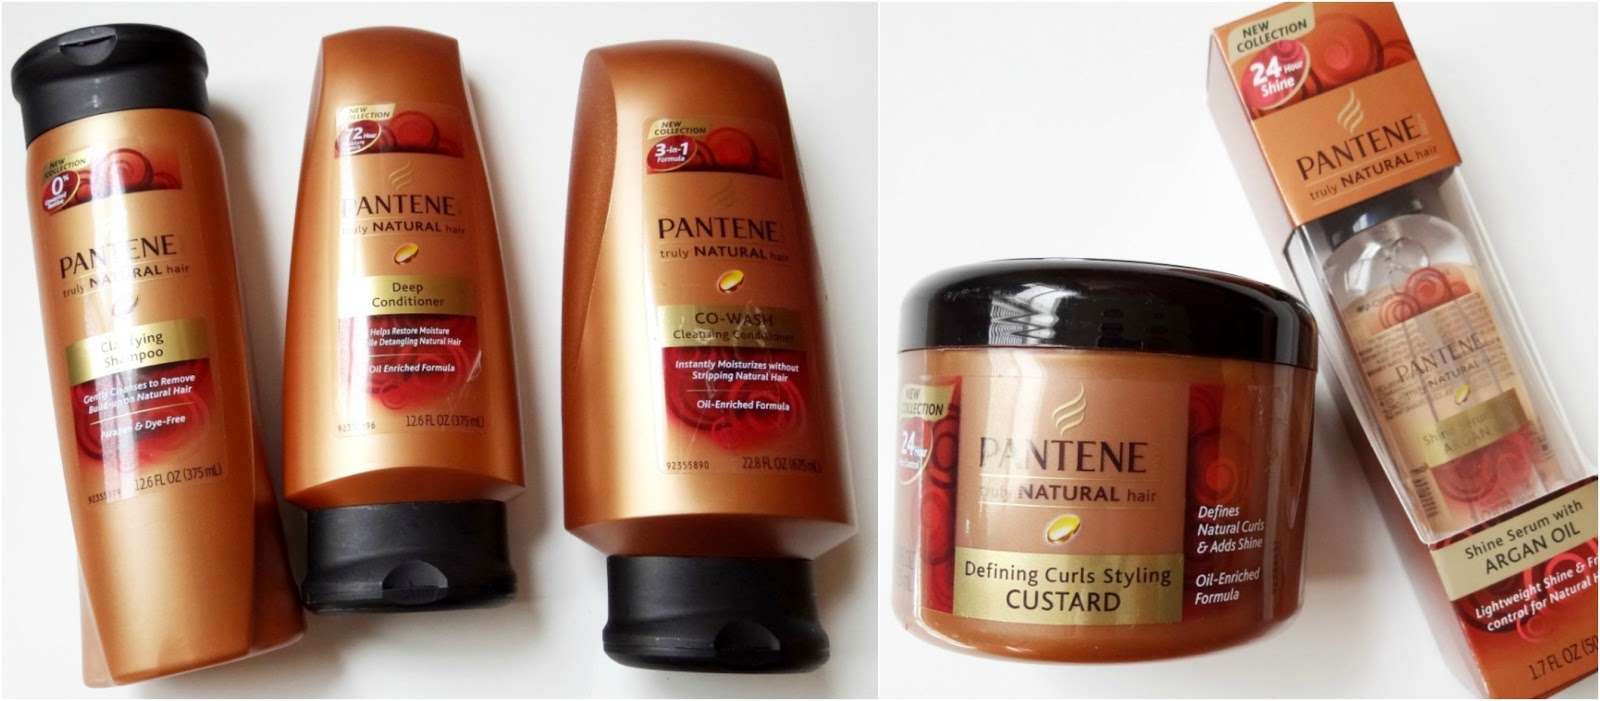 Baby Shopaholic Pantene Pro V Truly Natural Review Giveaway